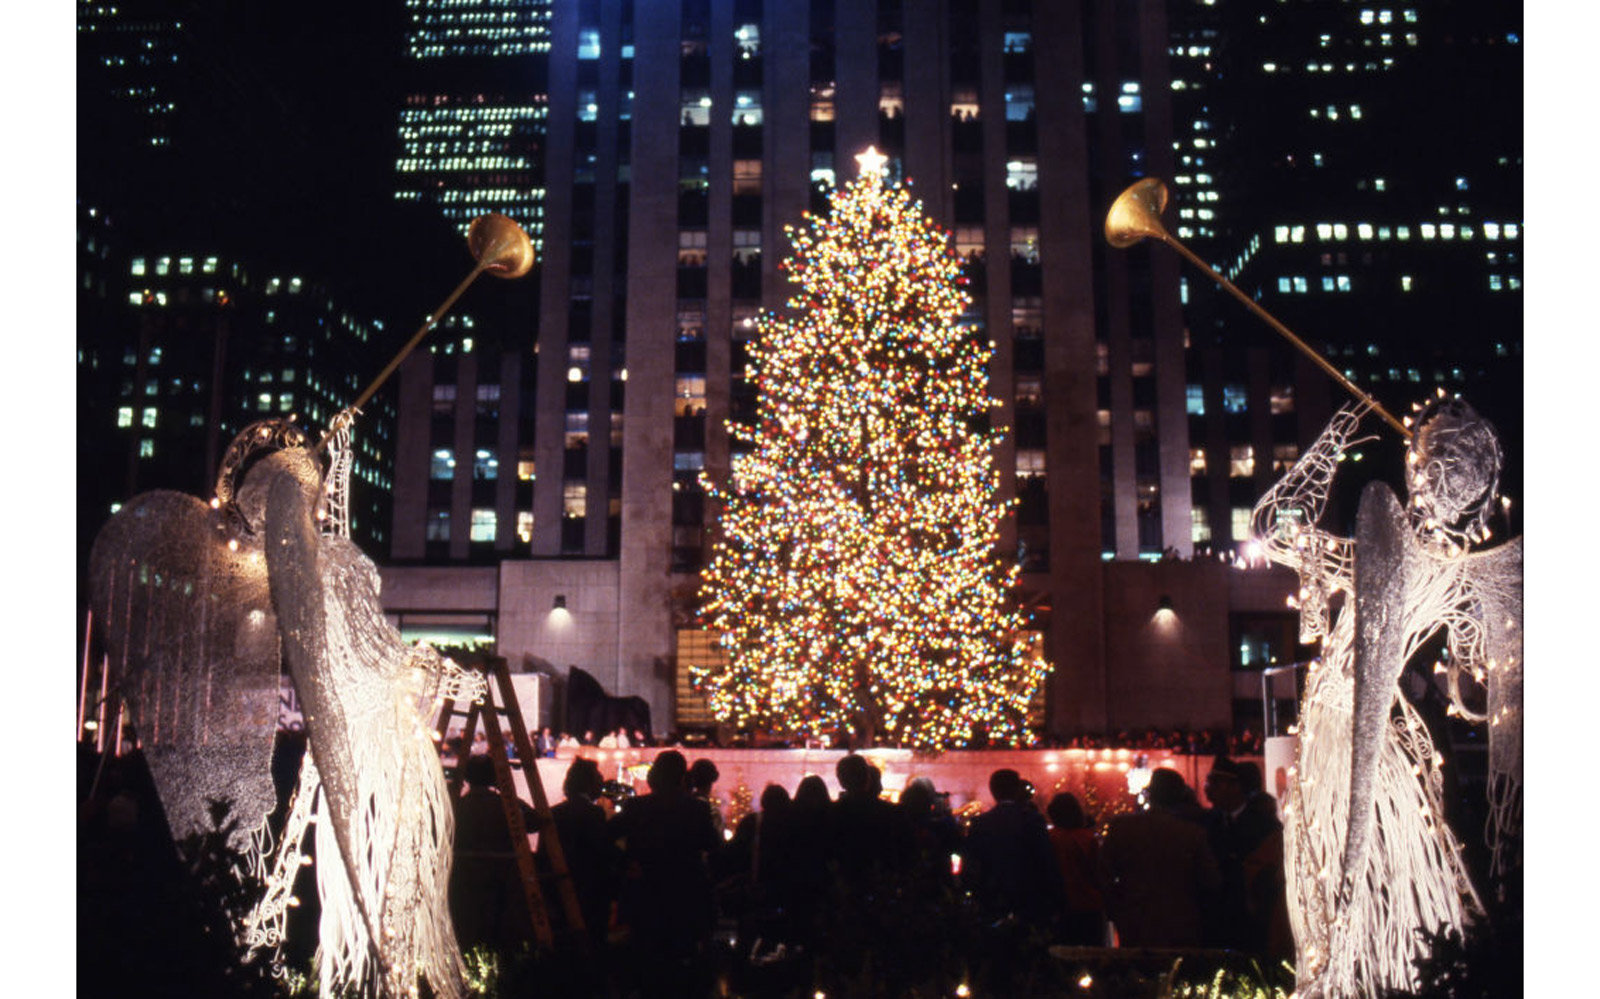 View of the christmas tree at Rockefeller Center in New York City.